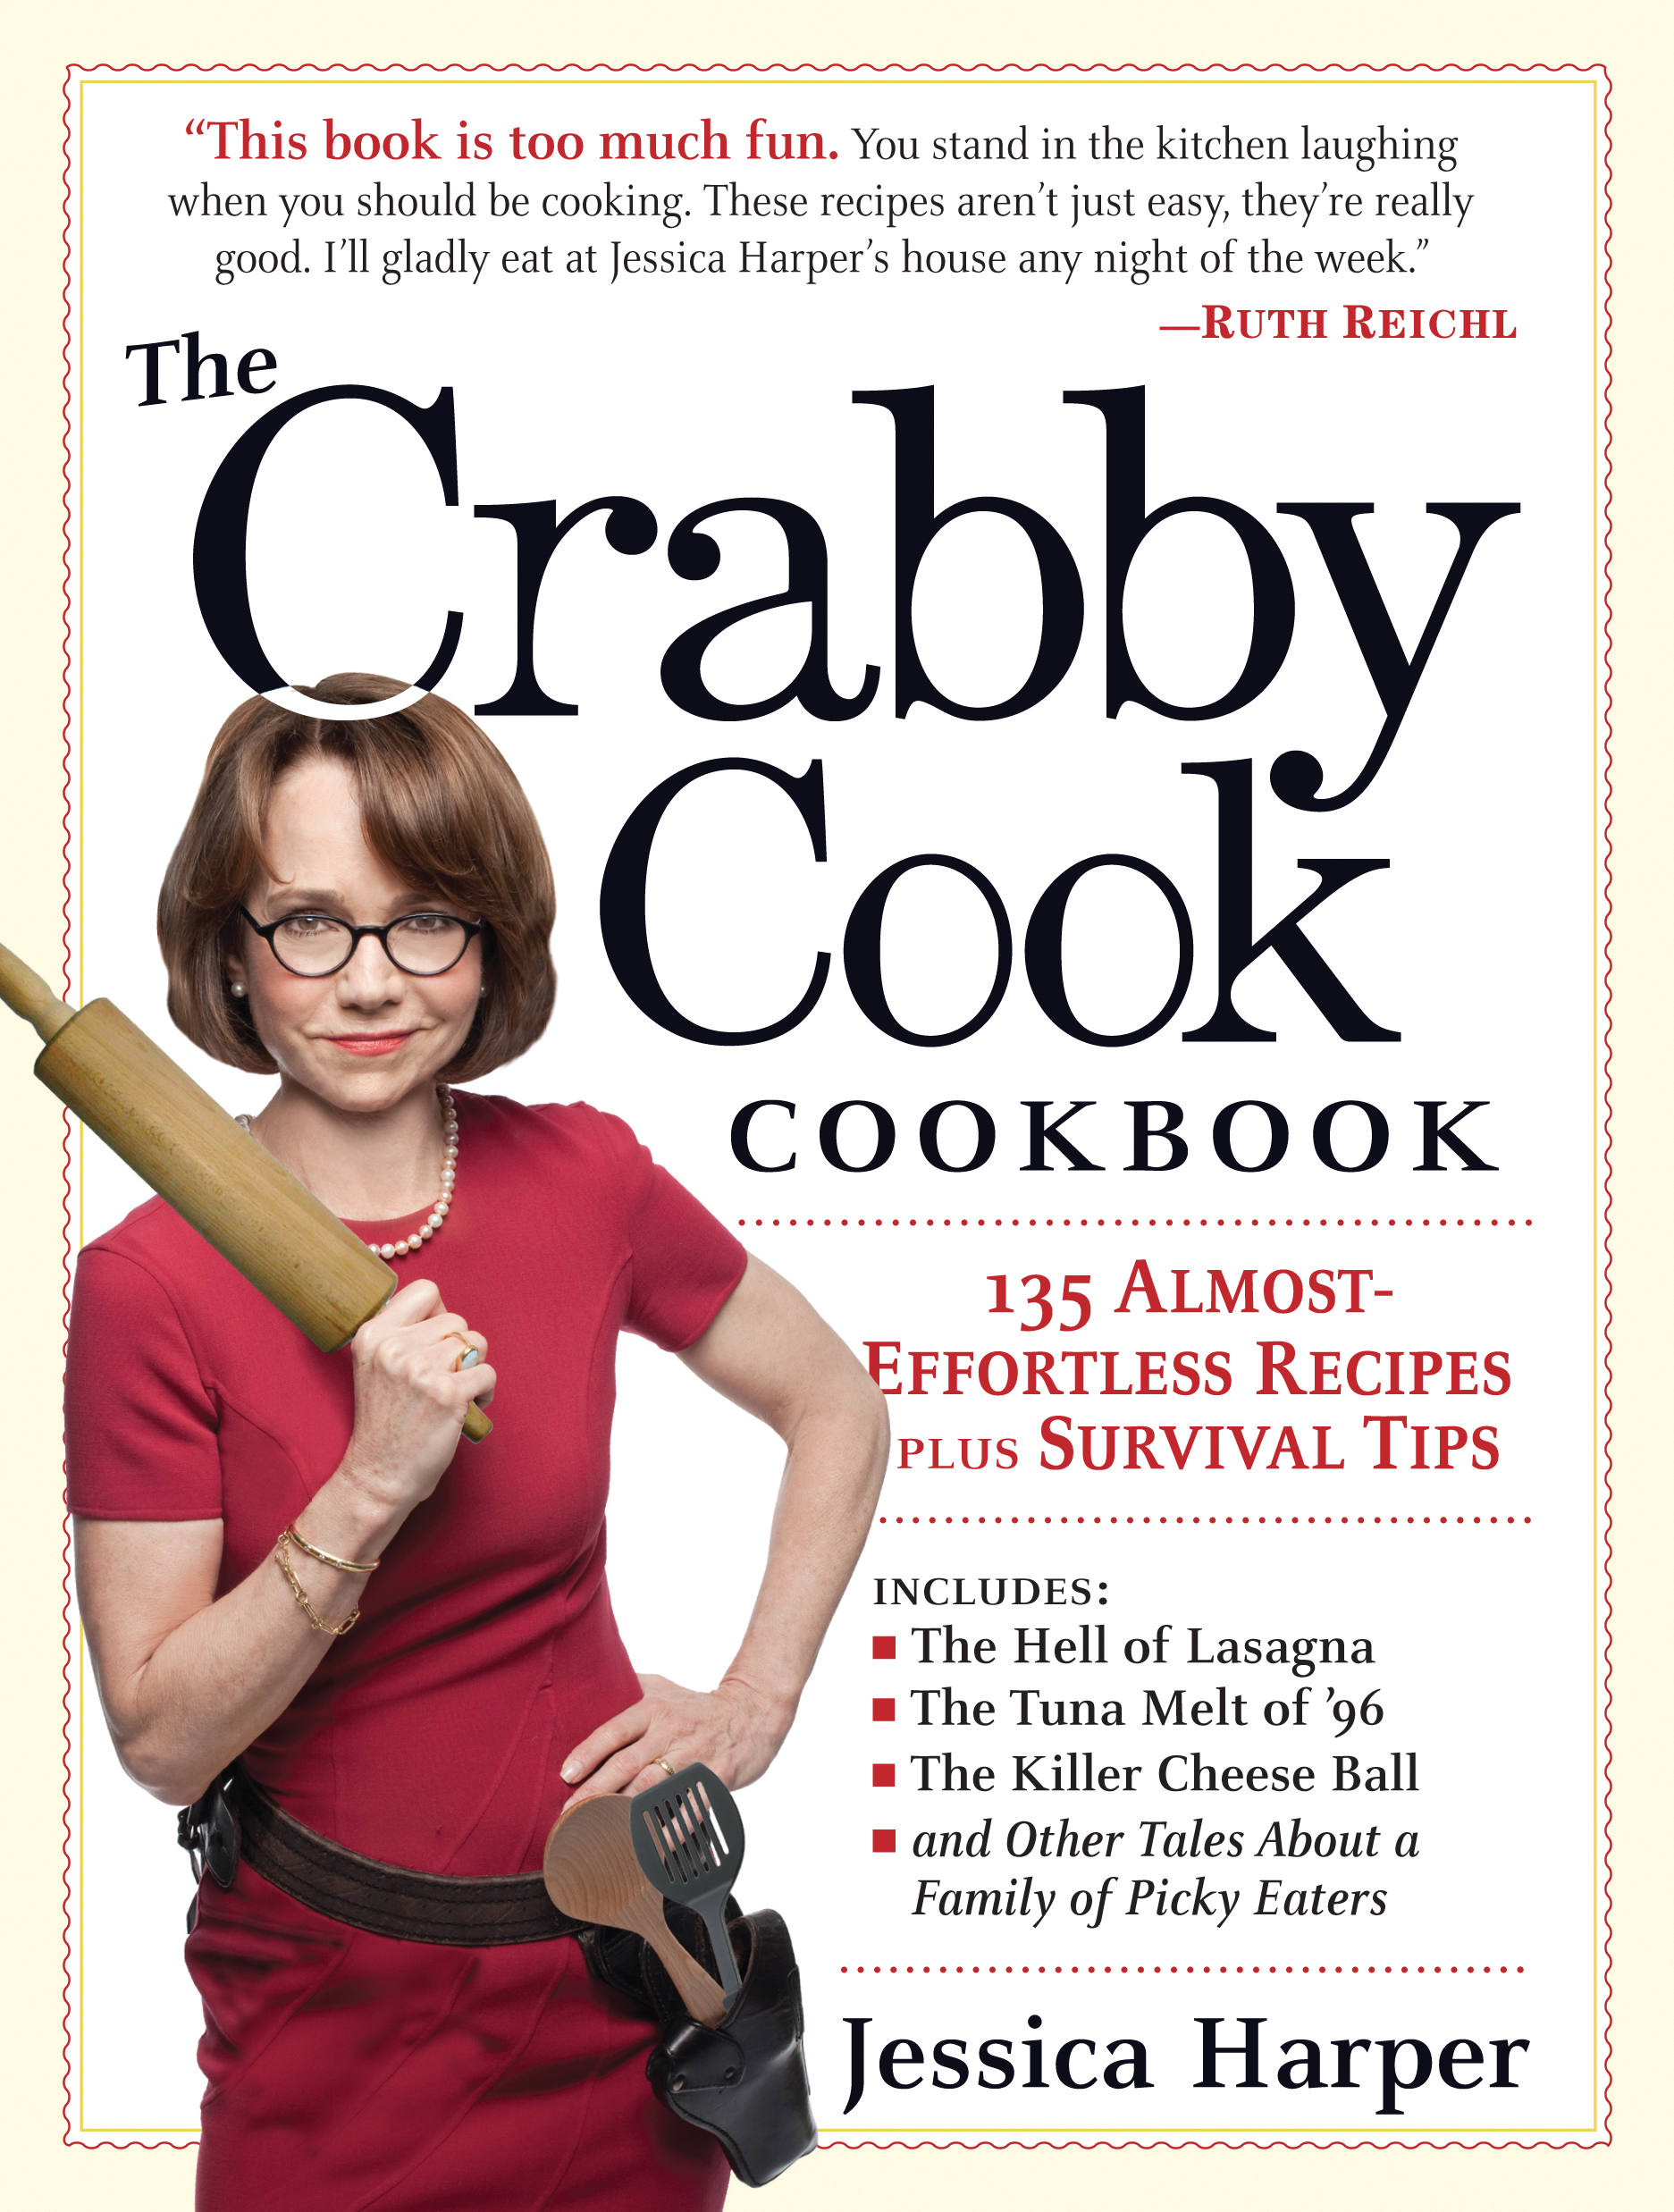 Jessica Harper - The Crabby Cookbook